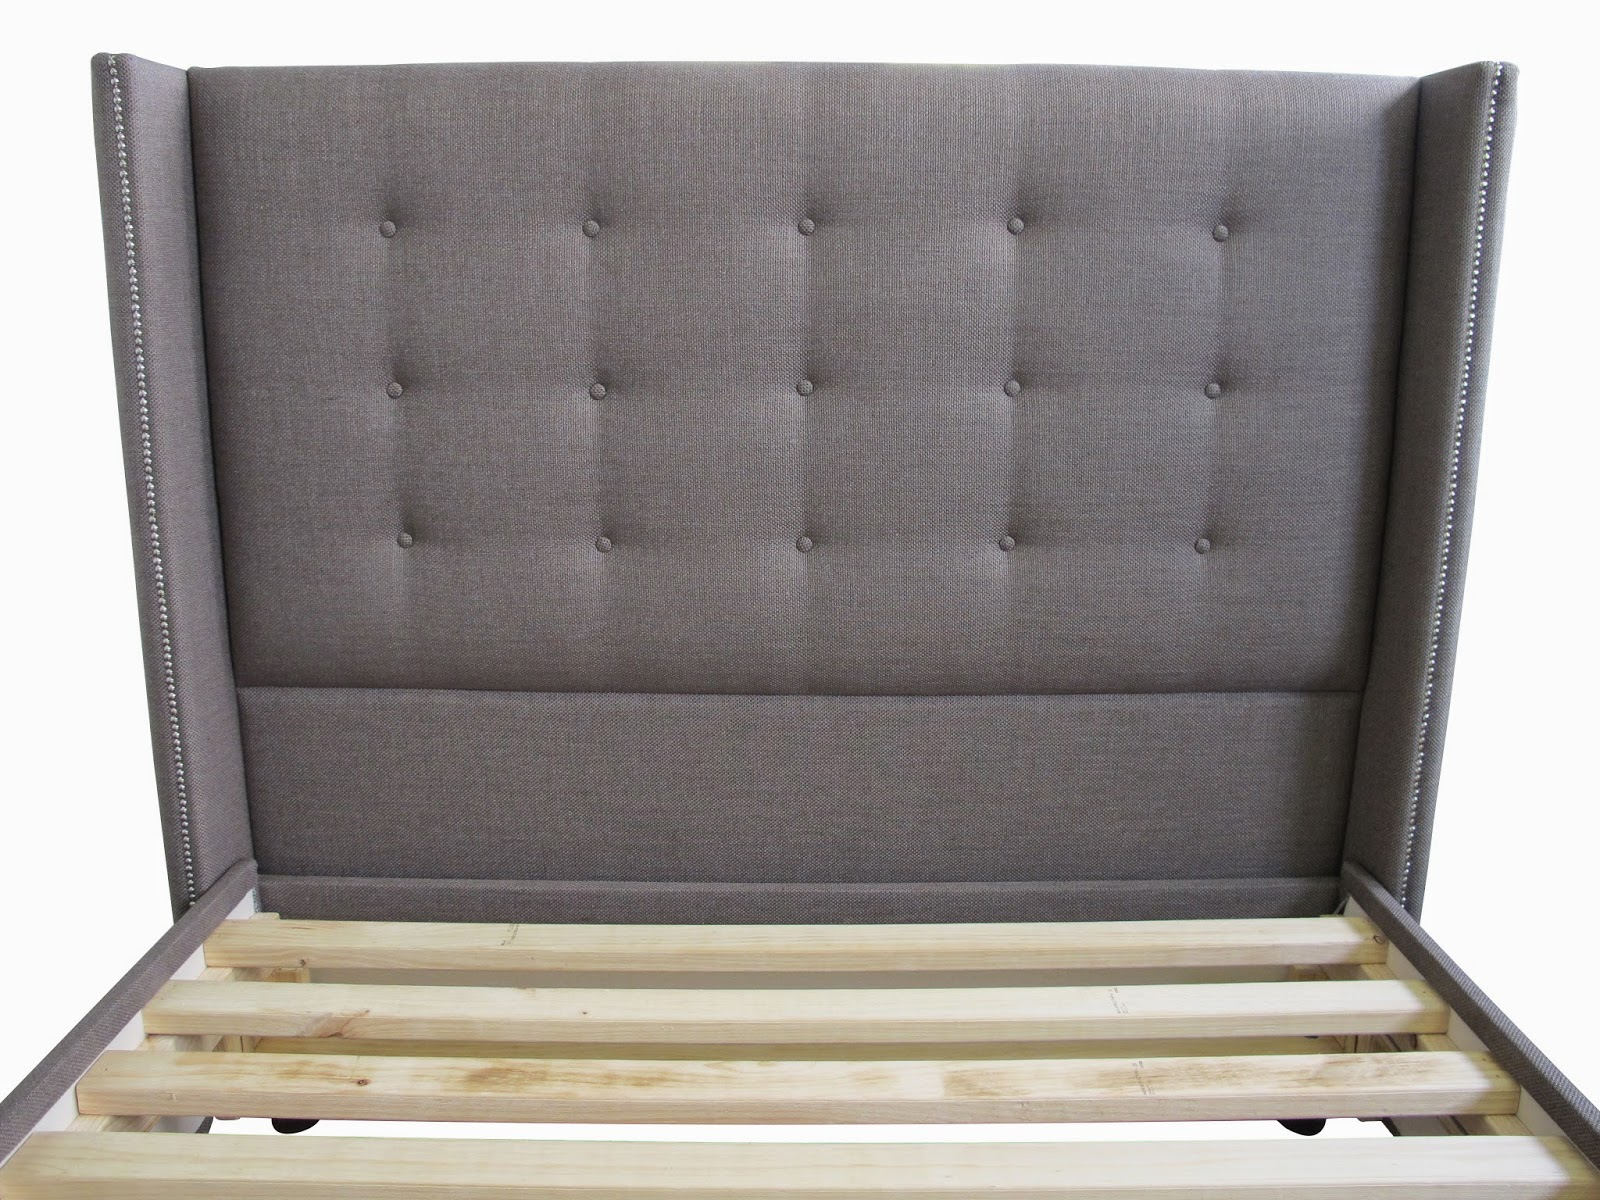 The wingback upholstered headboard is a luxurious and elegant bedhead design custom made and upholstered in any fabric. Made to order at Bedhead Design Sydney